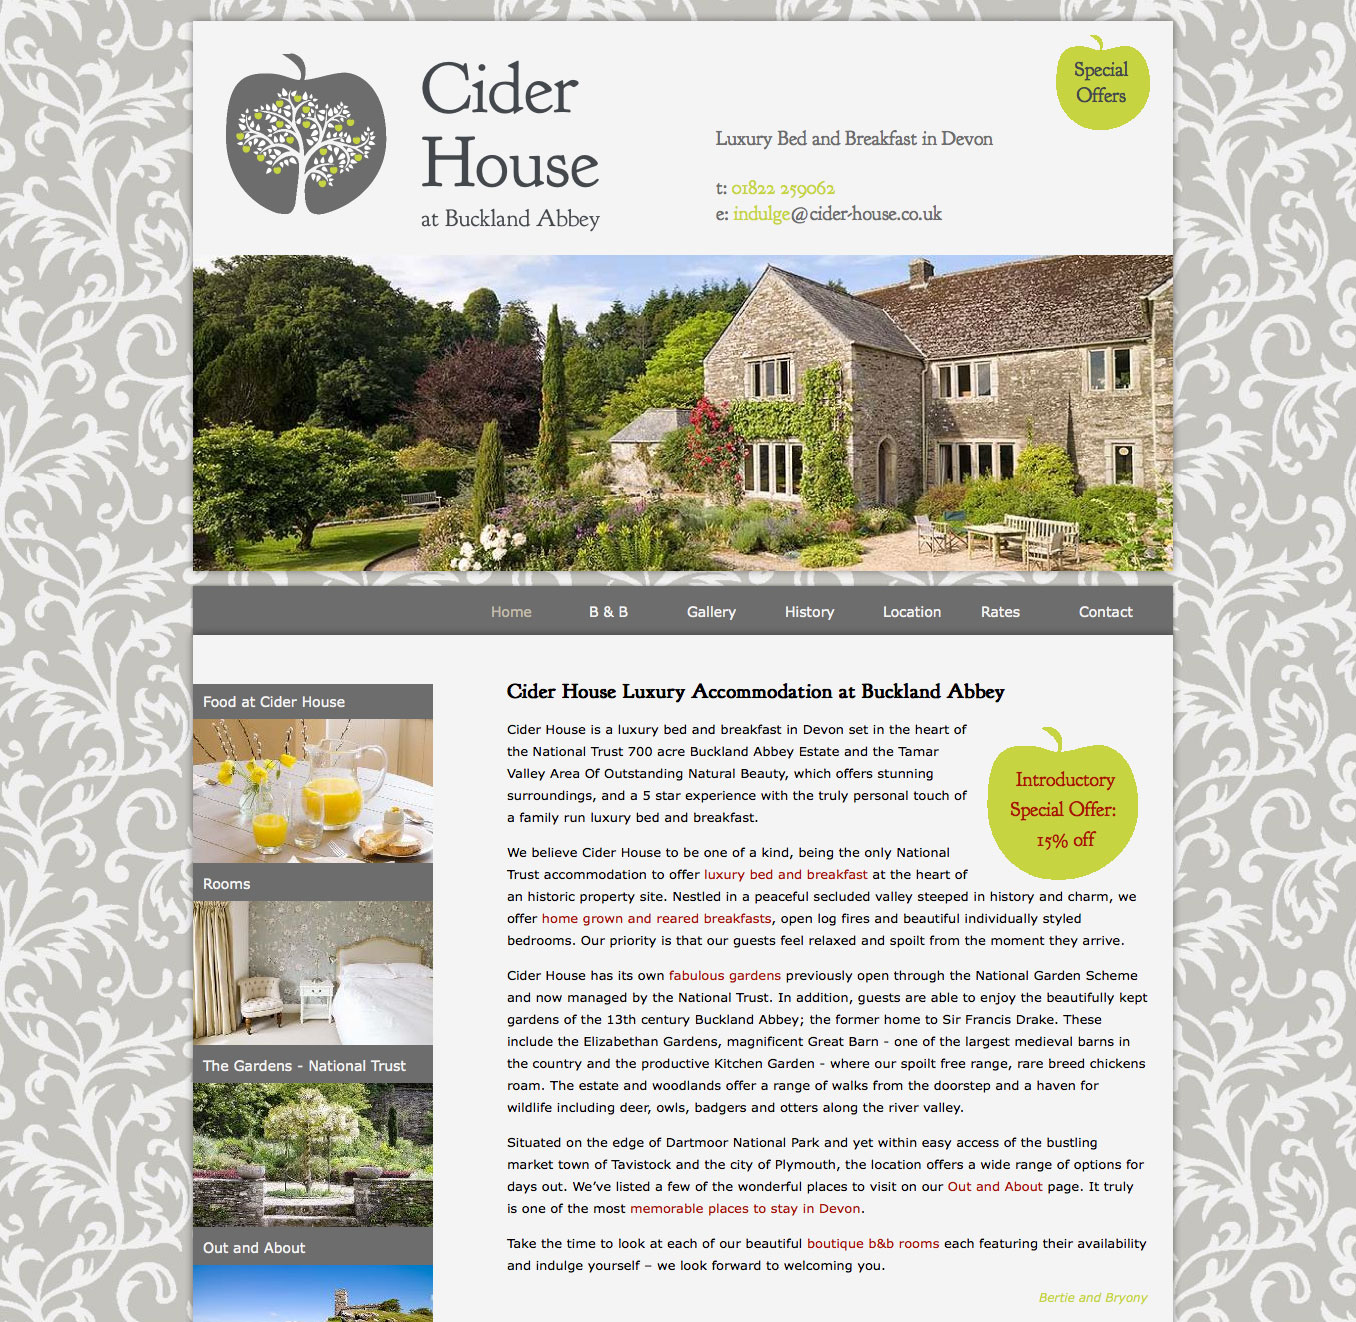 Website design for Cider House Bed & Brekfast